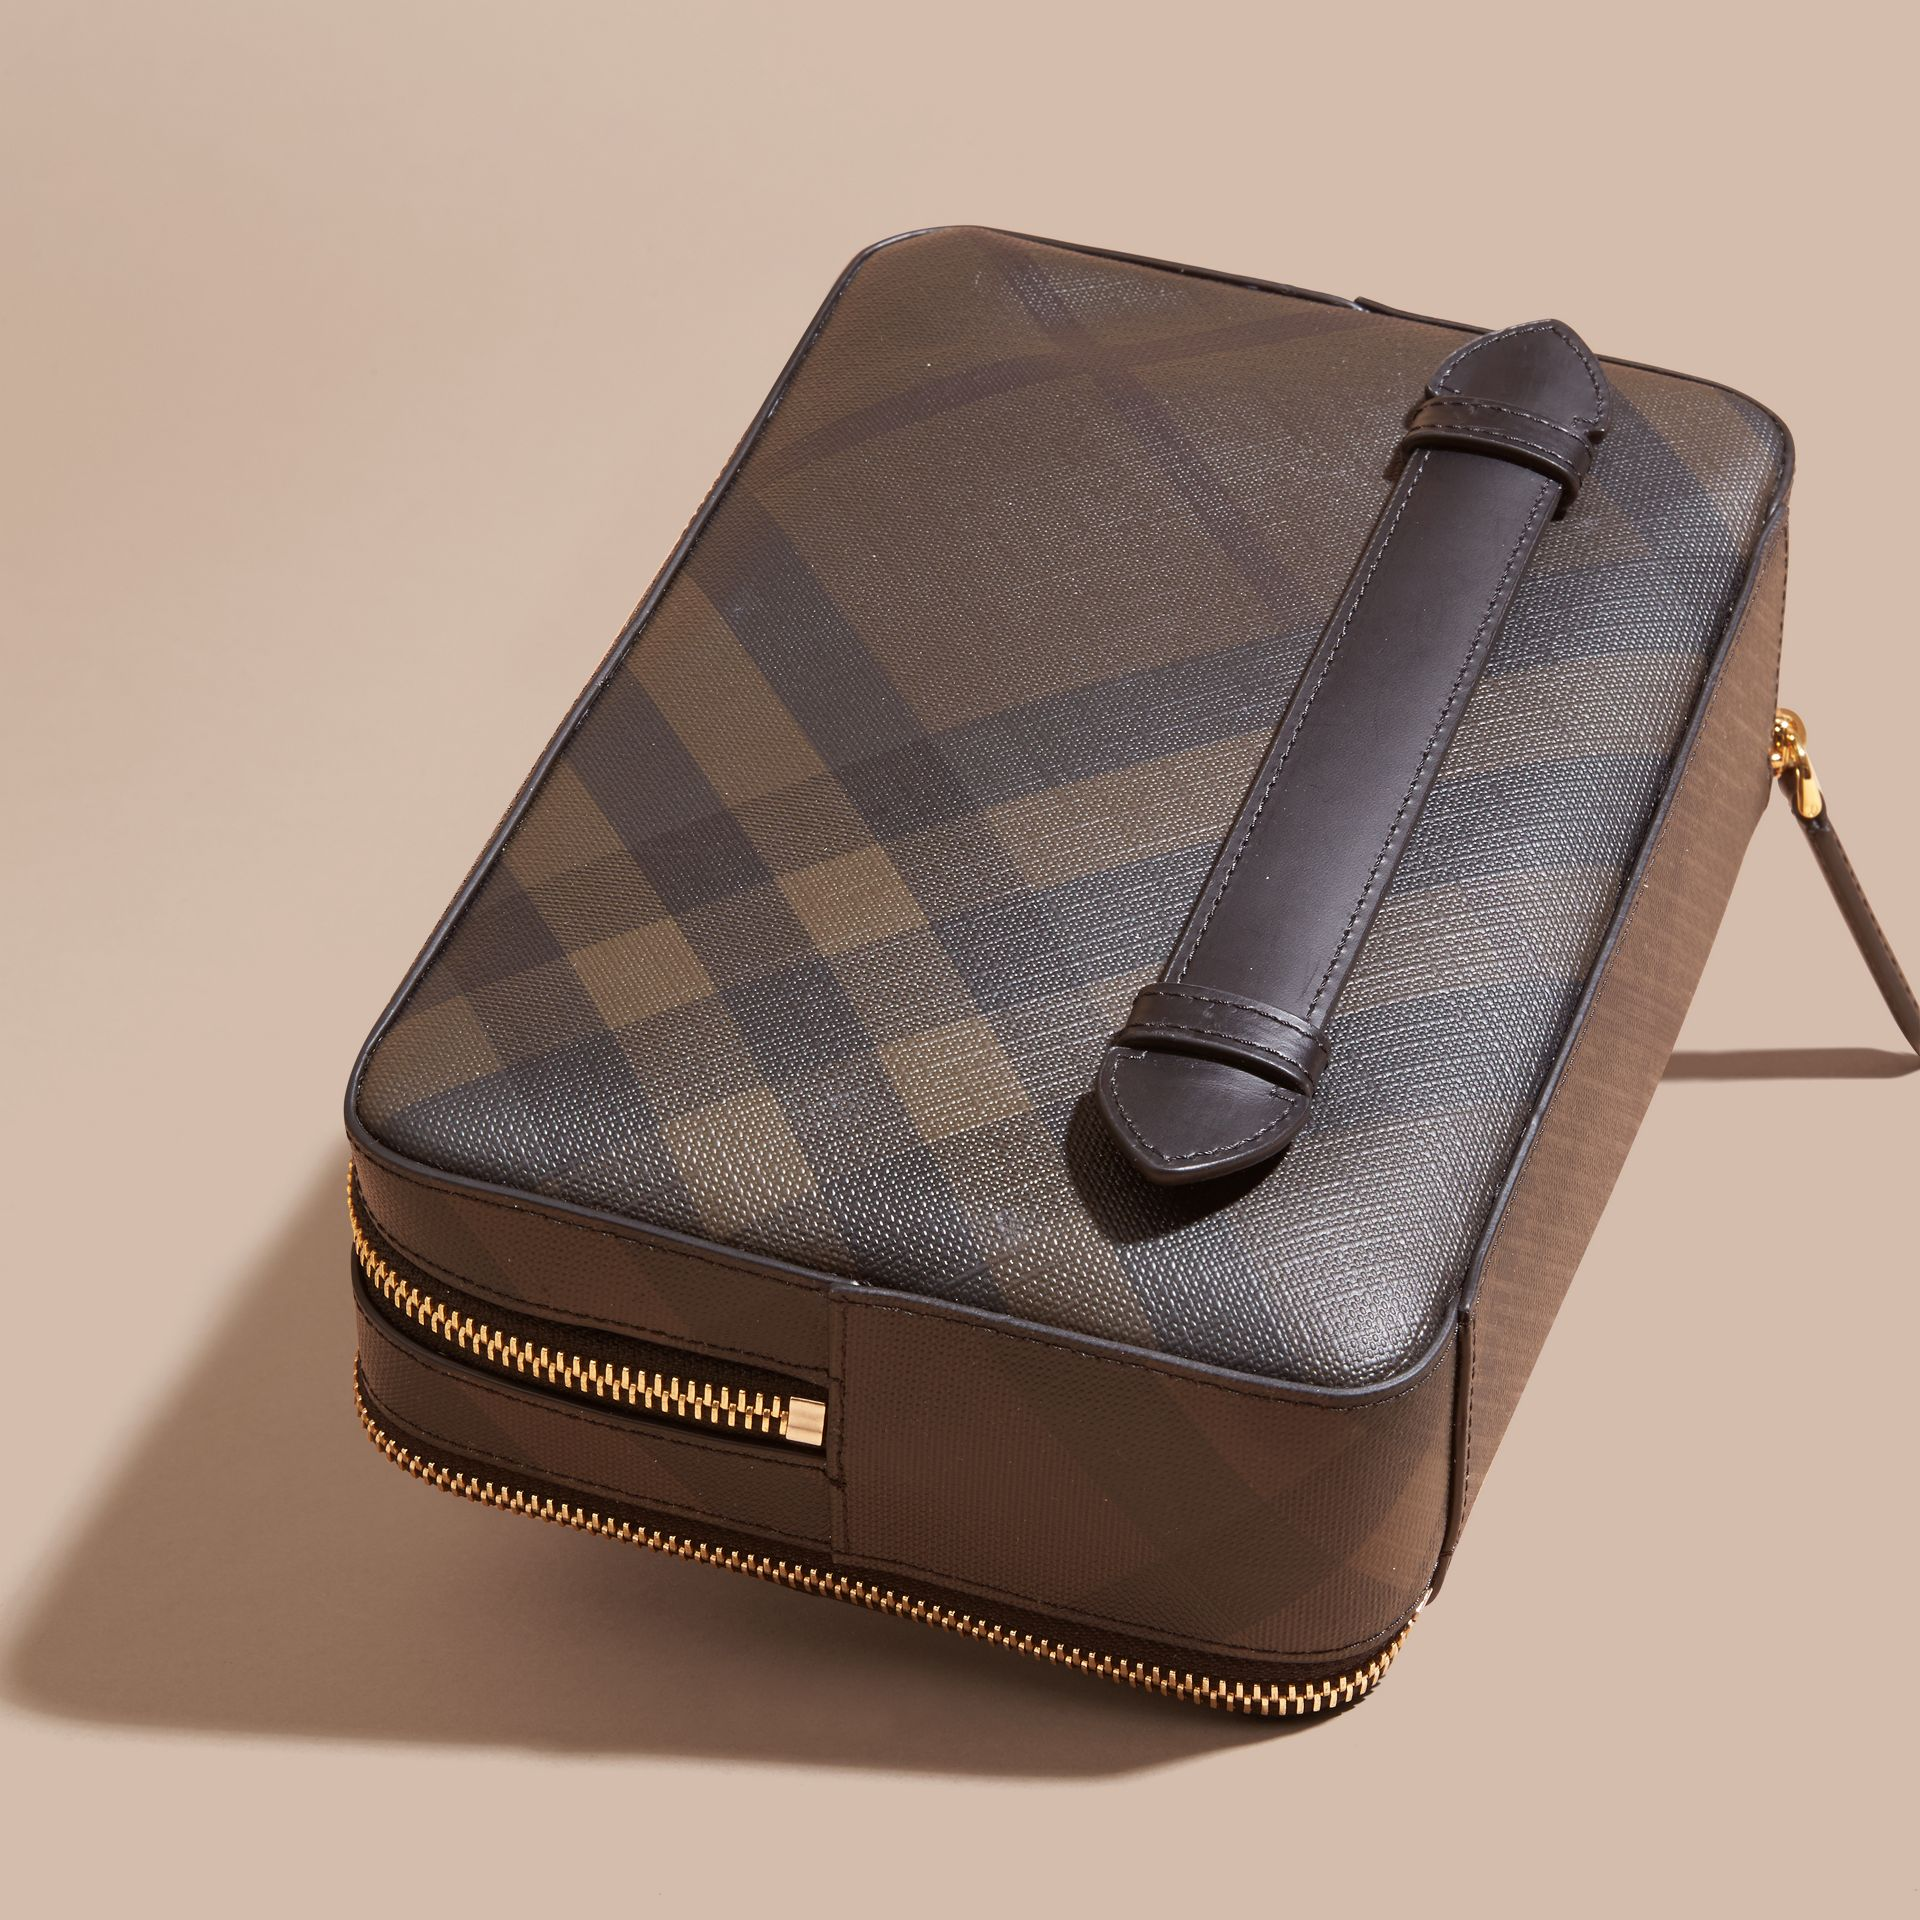 Leather-trimmed London Check Pouch in Chocolate/black - Men | Burberry - gallery image 3